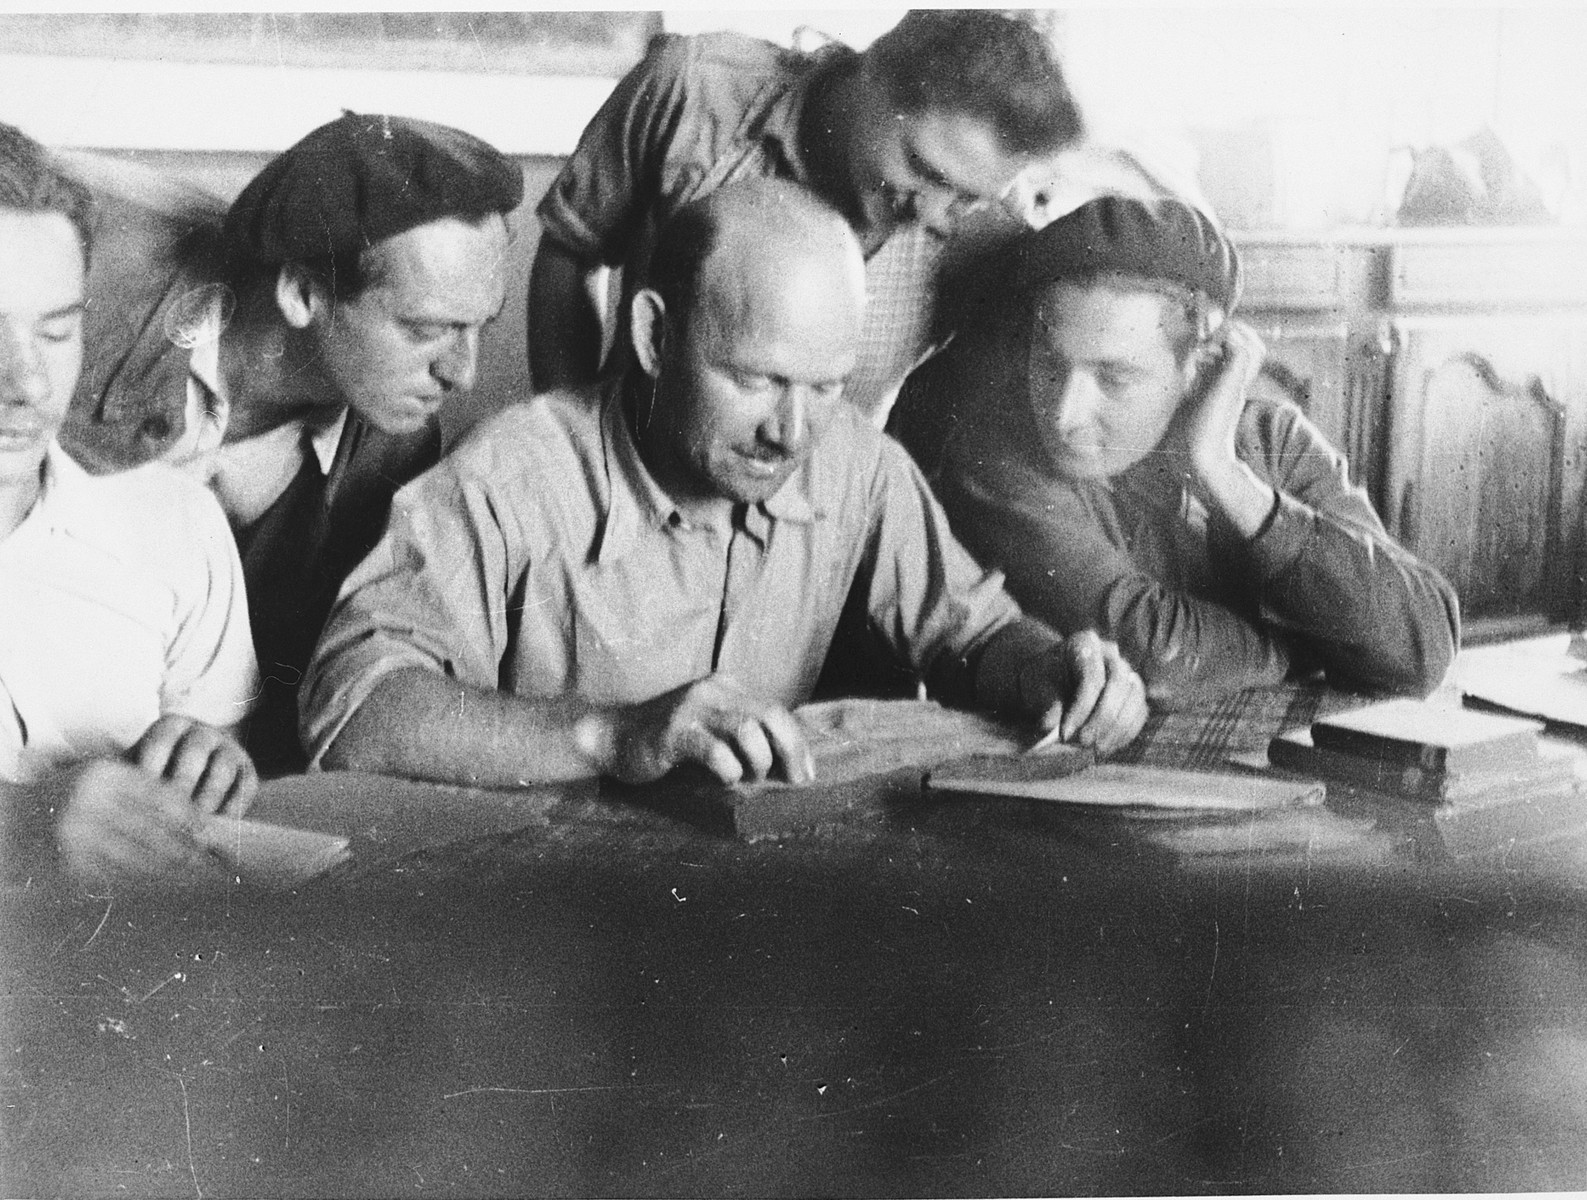 Members of the leadership of the Eclaireurs Israelites de France (Jewish Scouts) look at a book together.  Among those pictured is F. Hammel (center).  The EIF joined forces with the Mouvement de la Jeunesse Sioniste in 1943.